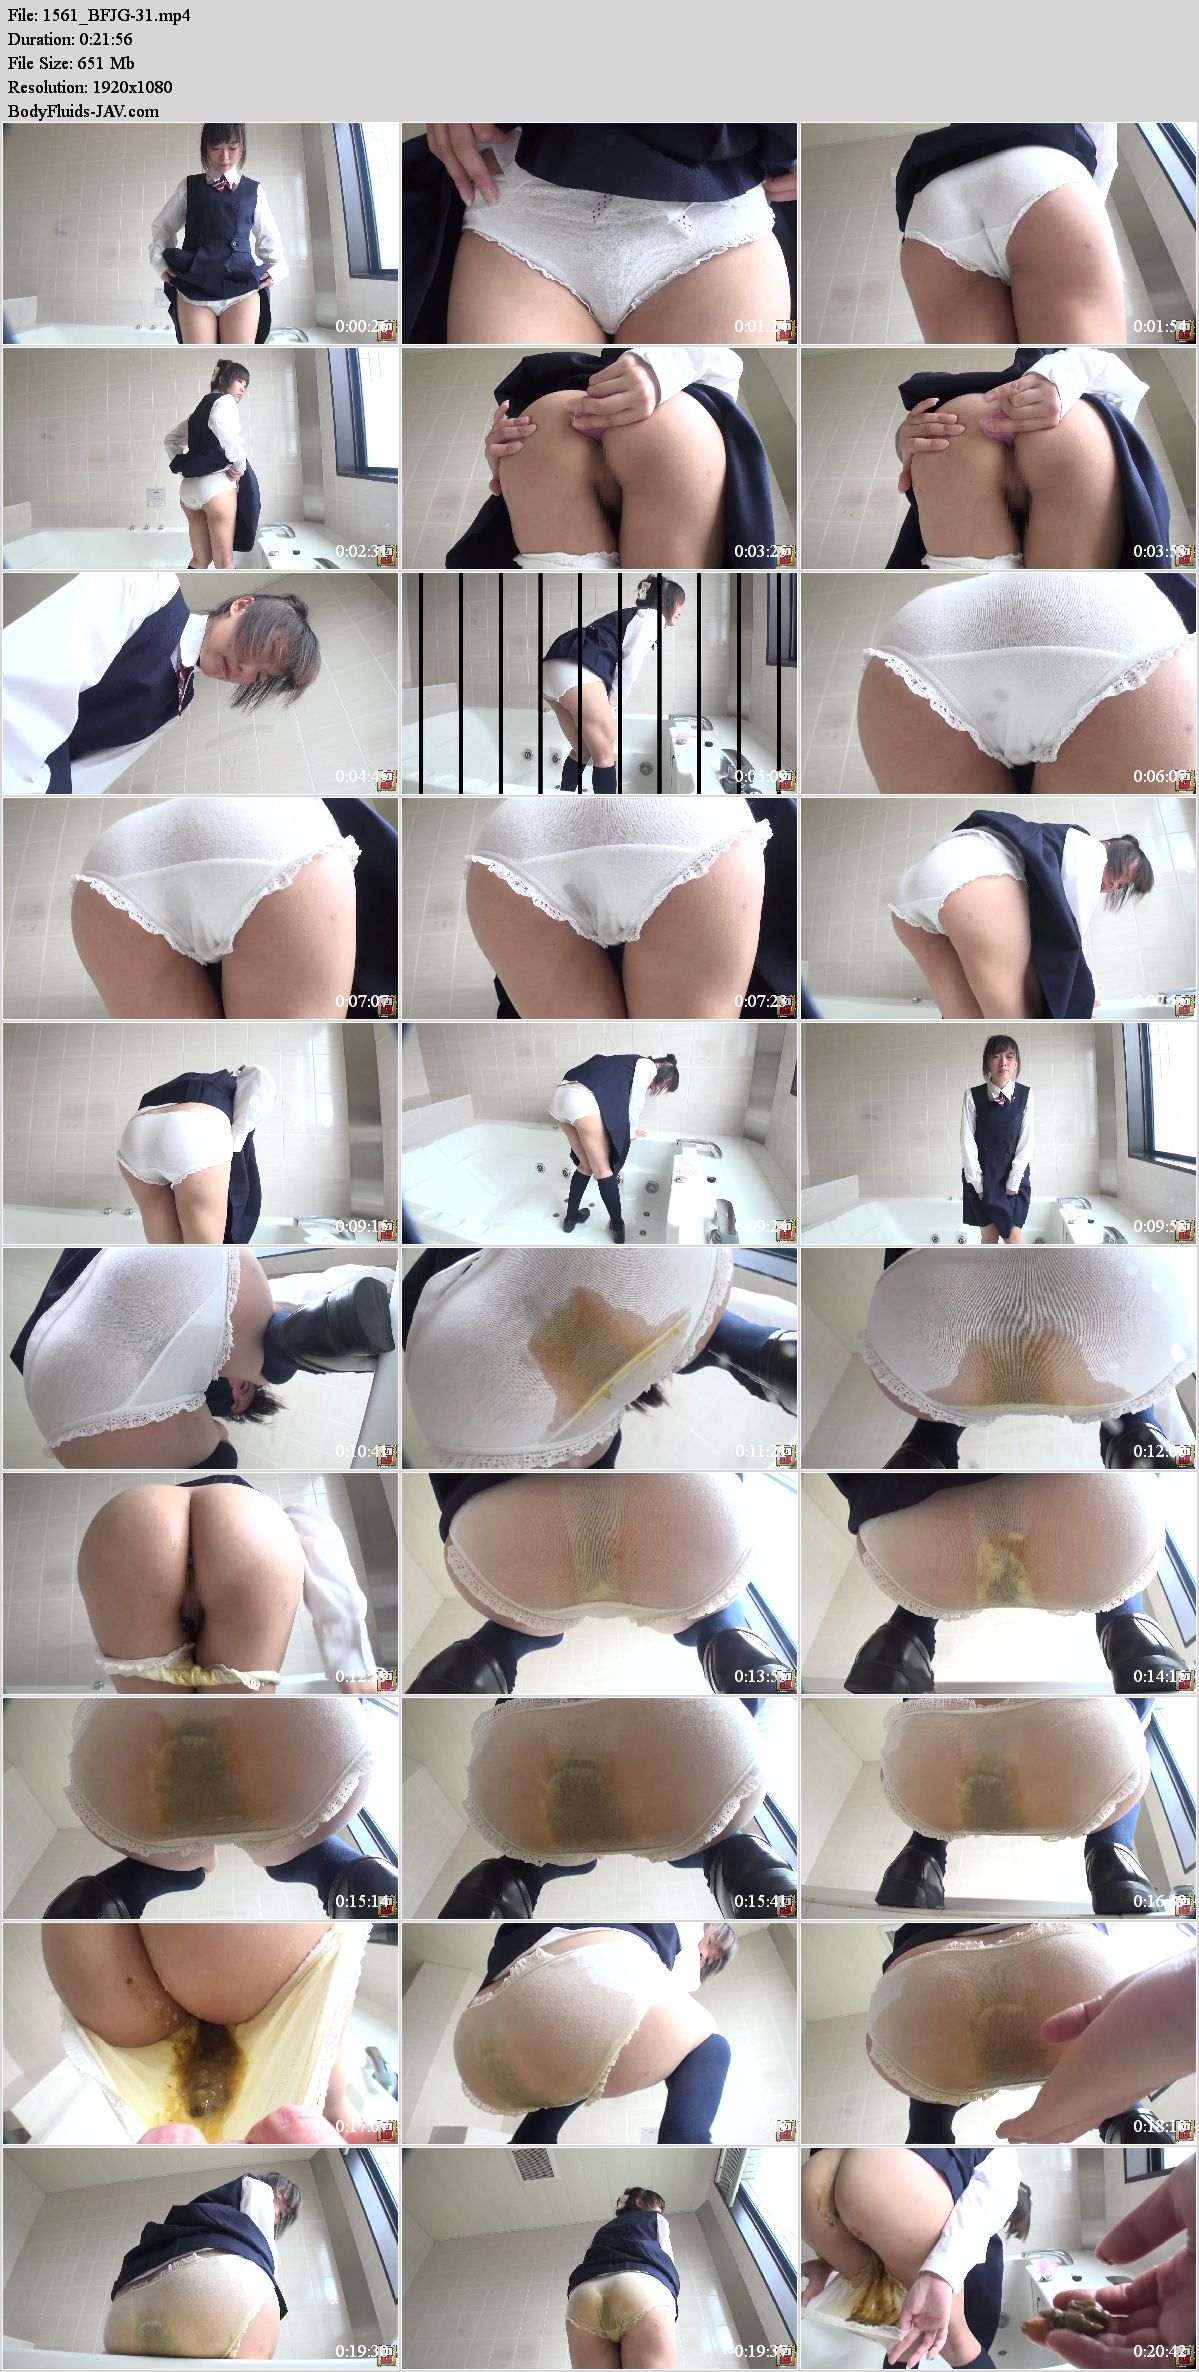 BFJG-31 Young girl panty pooping in bathroom. (HD 1080p)